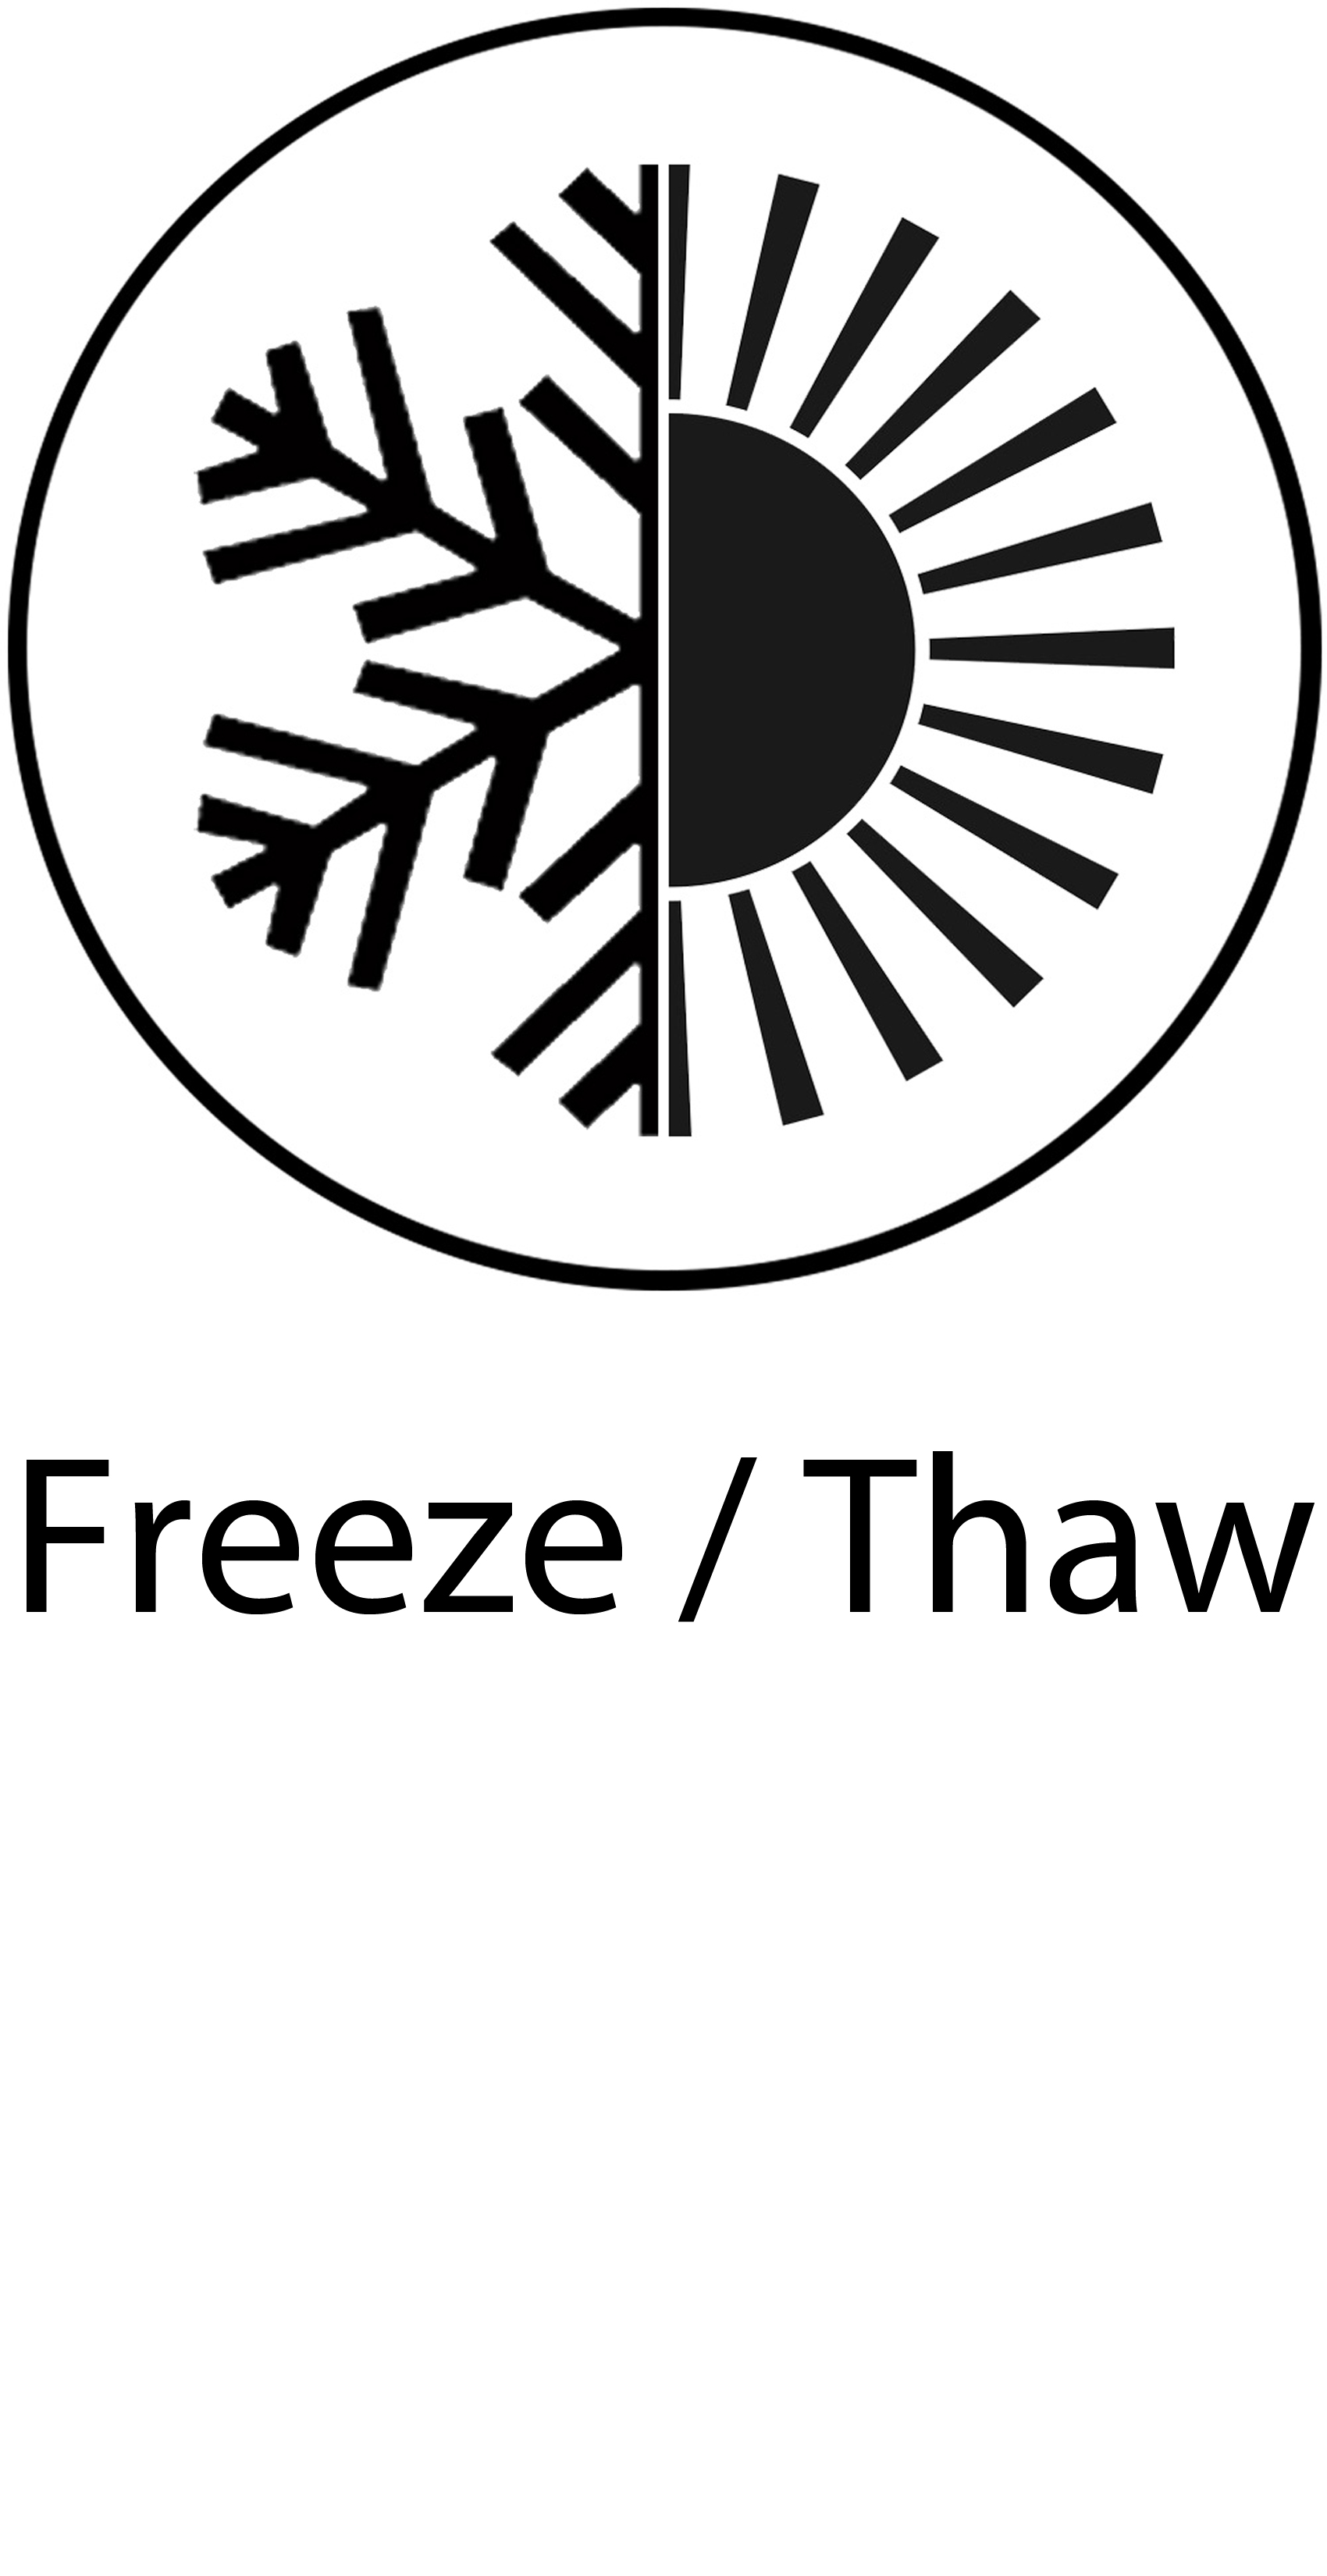 Freeze Thaw.jpg